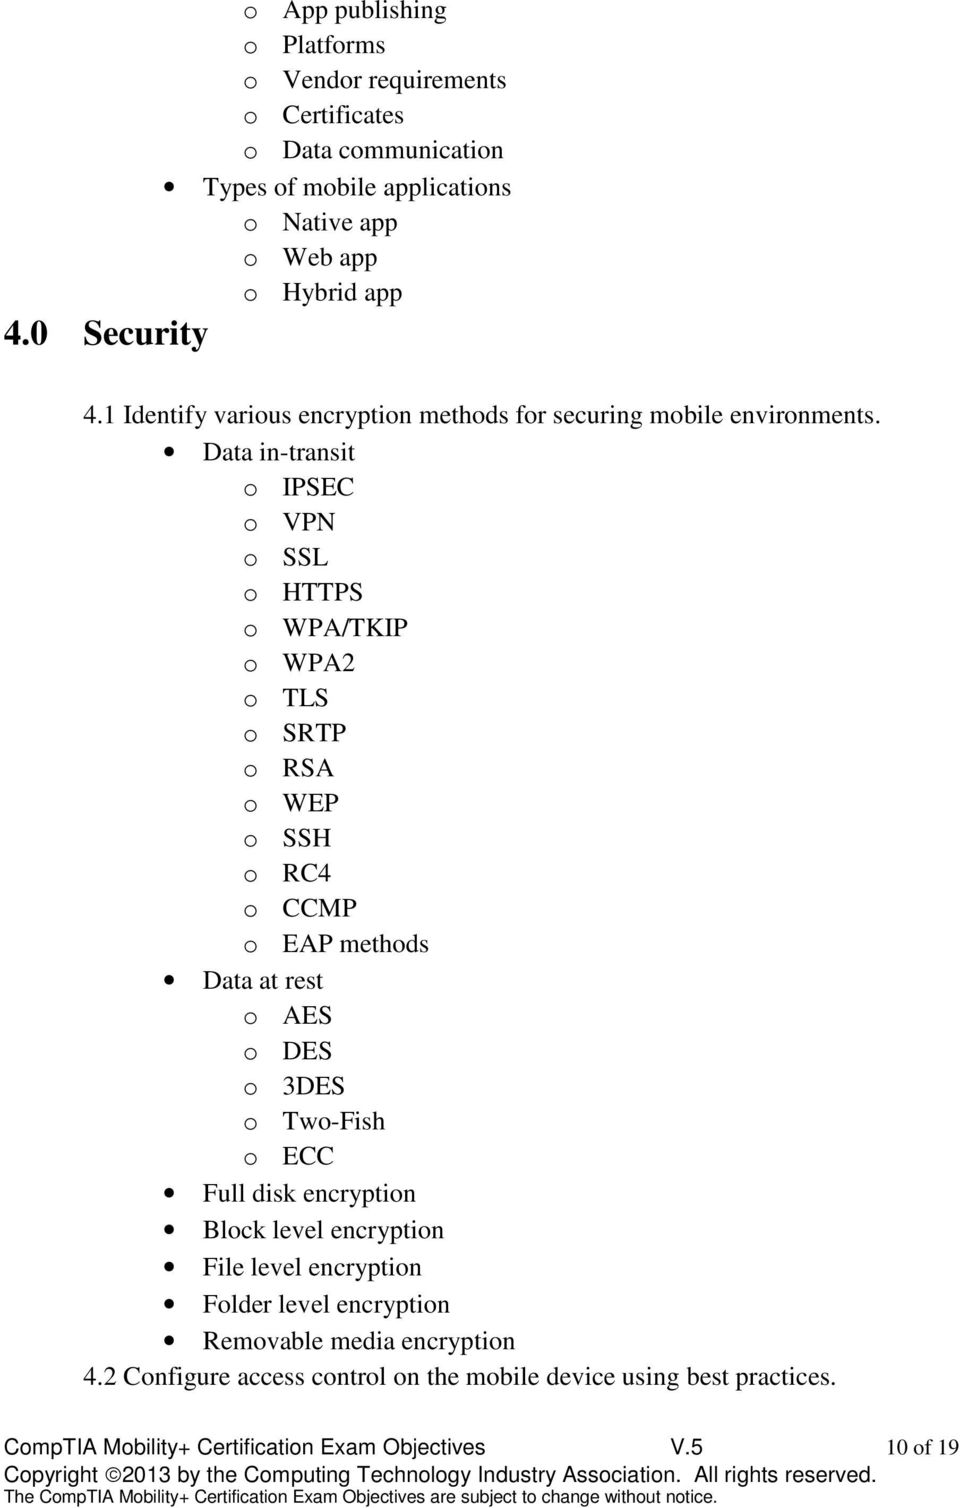 Data in-transit o IPSEC o VPN o SSL o HTTPS o WPA/TKIP o WPA2 o TLS o SRTP o RSA o WEP o SSH o RC4 o CCMP o EAP methods Data at rest o AES o DES o 3DES o Two-Fish o